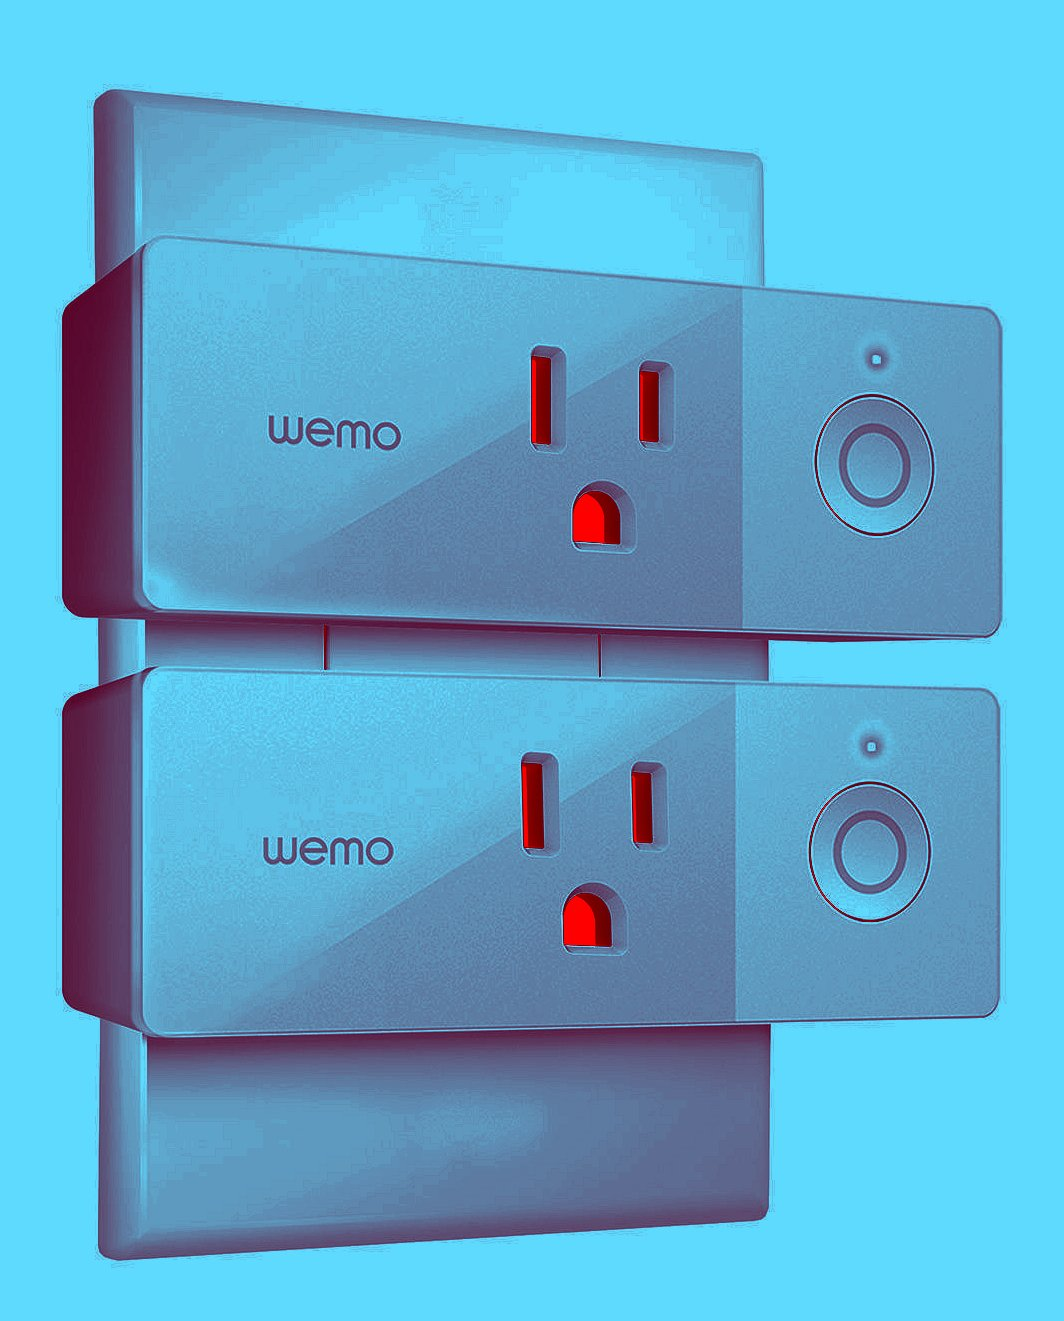 TechLaurels: Laurel Nevans' Computer Services Blog: The WeMo Smart